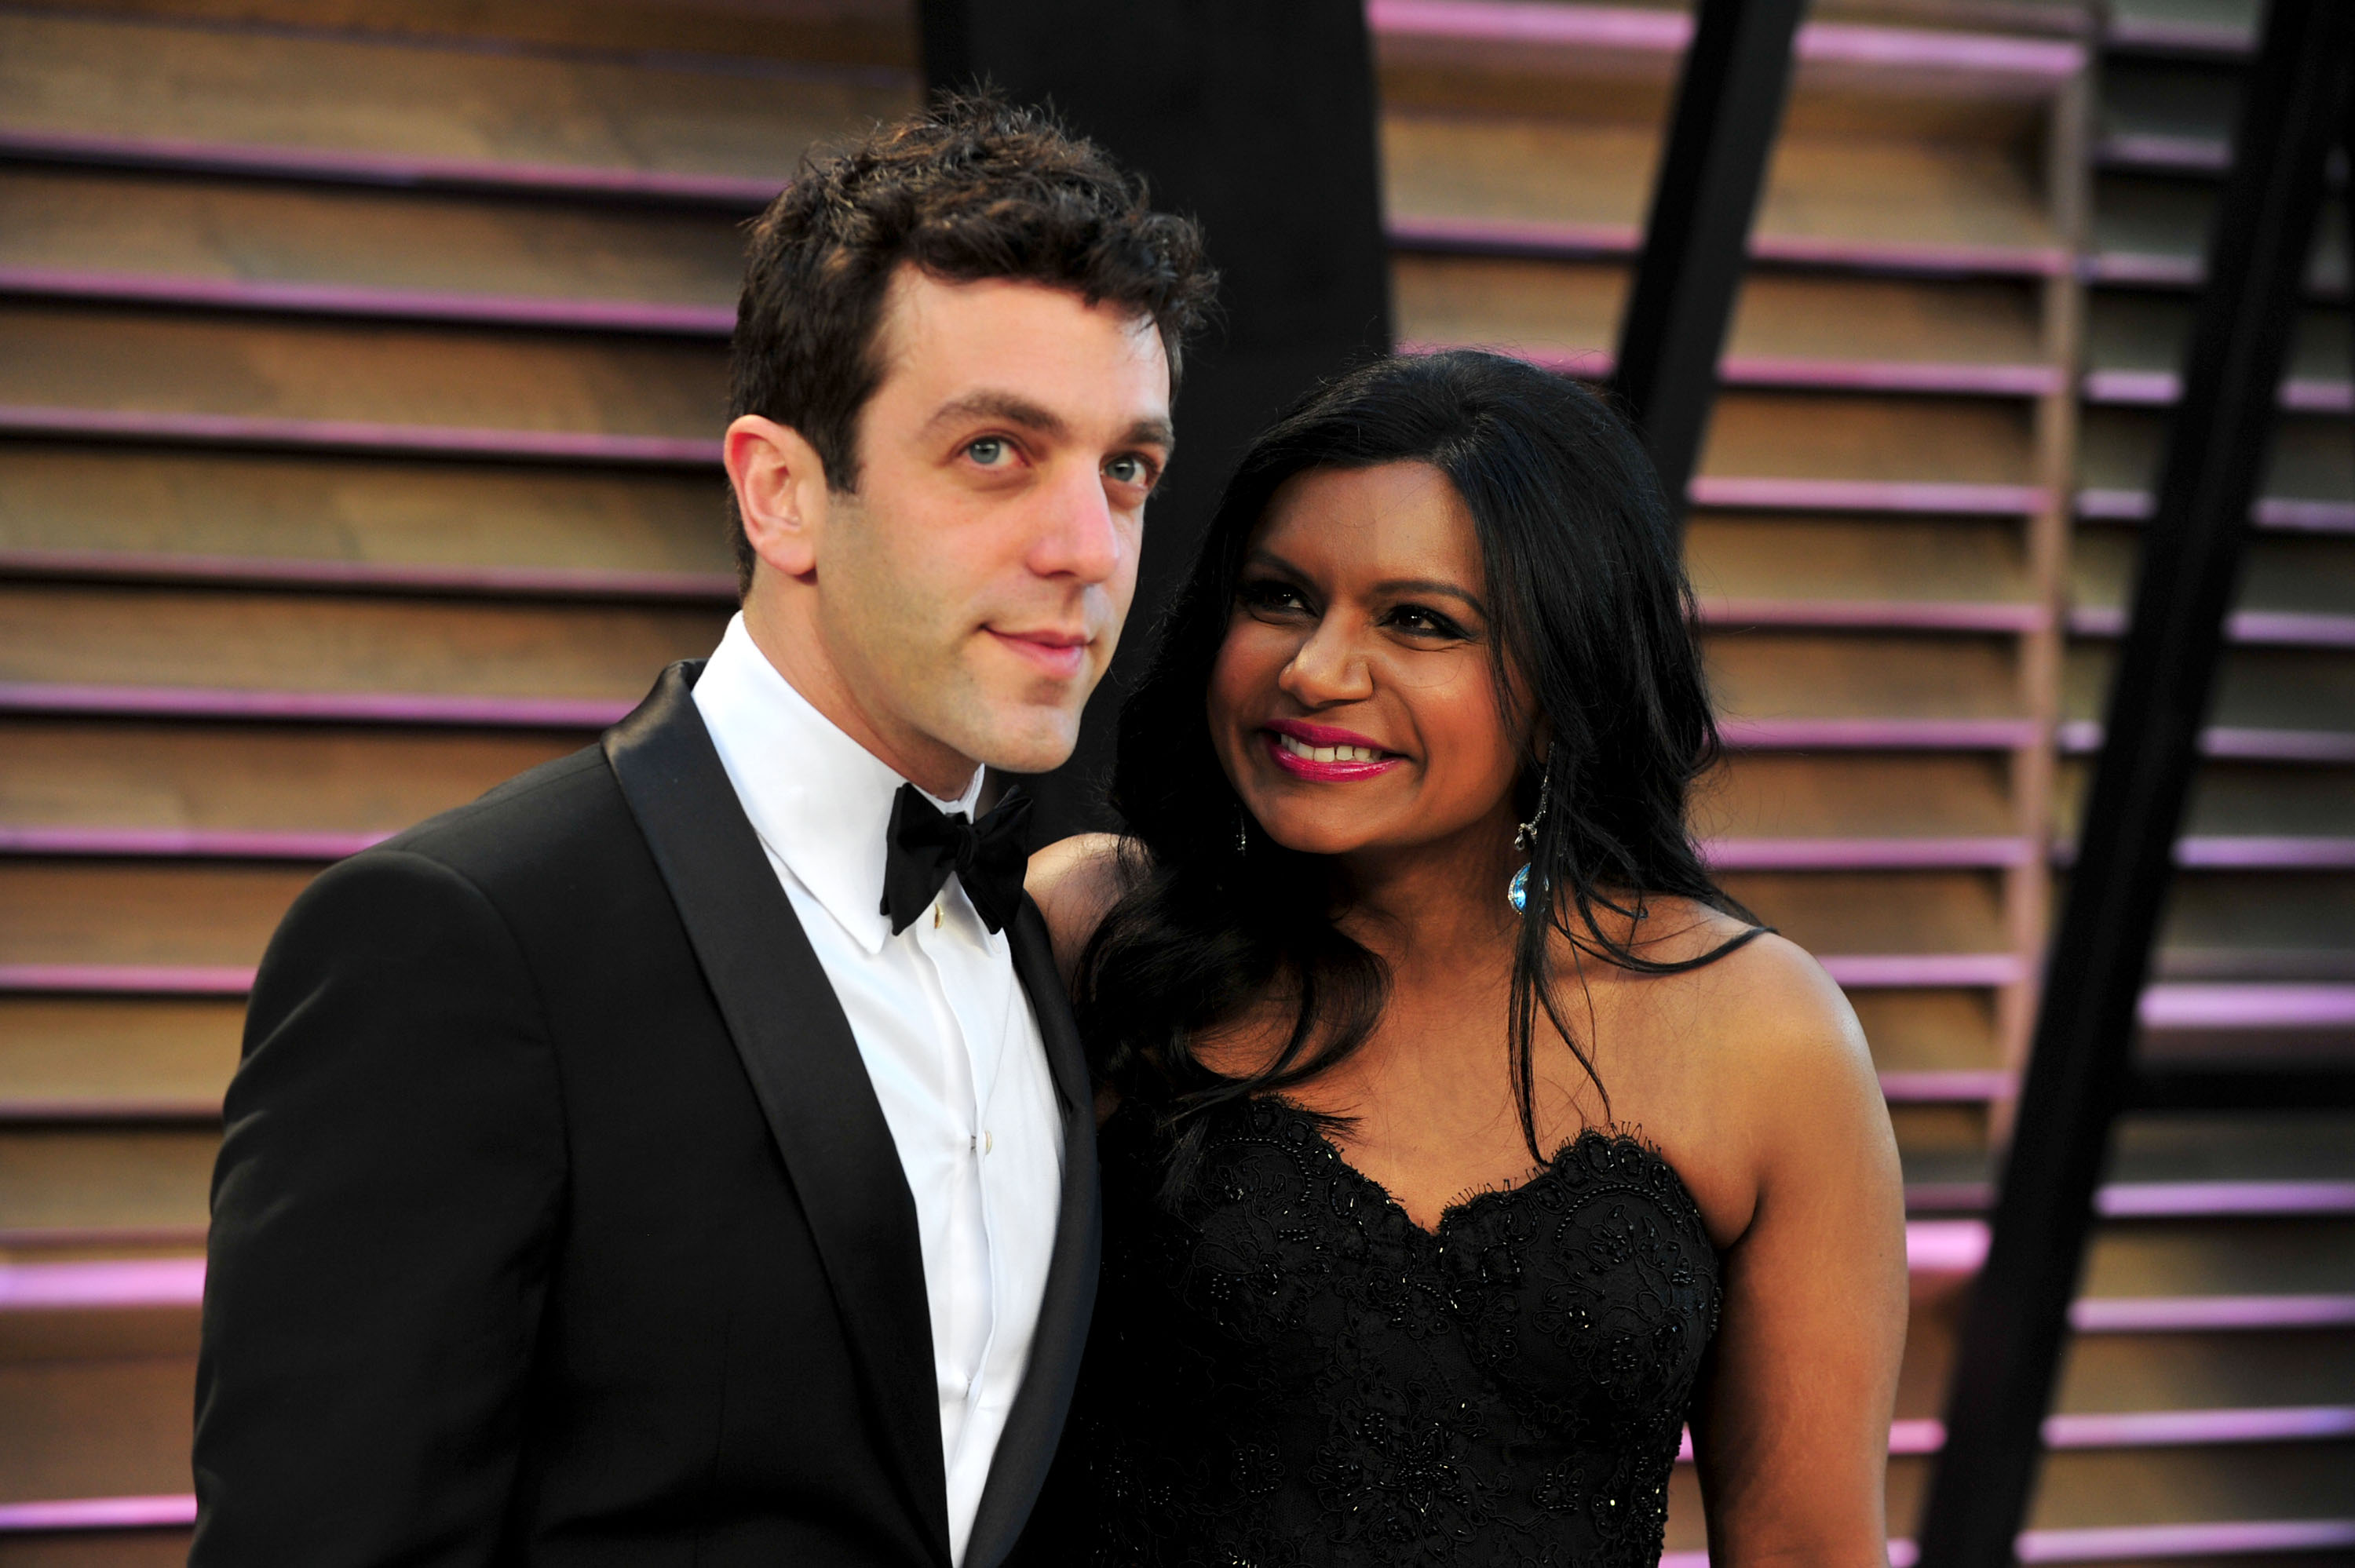 Actor B.J. Novak (L) and Mindy Kaling attend the 2014 Vanity Fair Oscar Party, March 2, 2014 in West Hollywood, Calif.